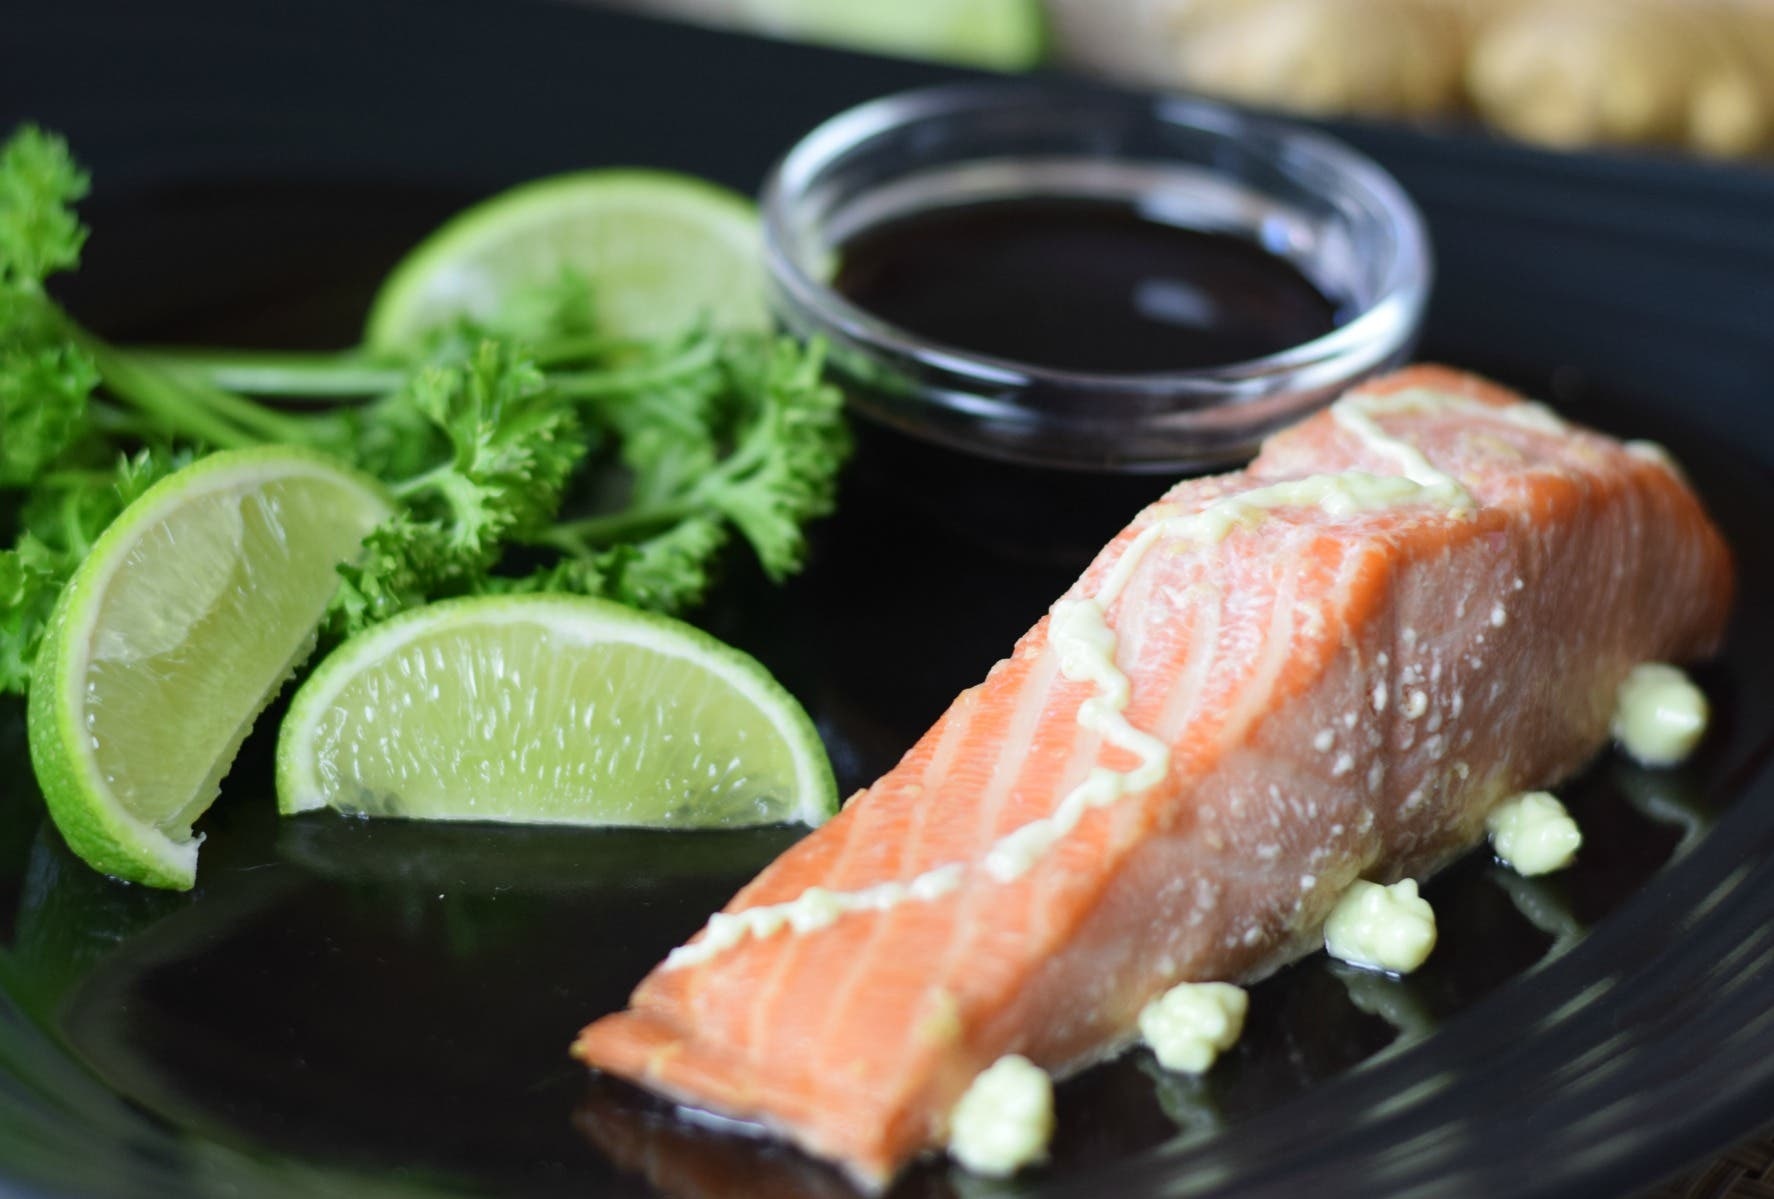 salmon with wasabi on a black plate with lime and parsley